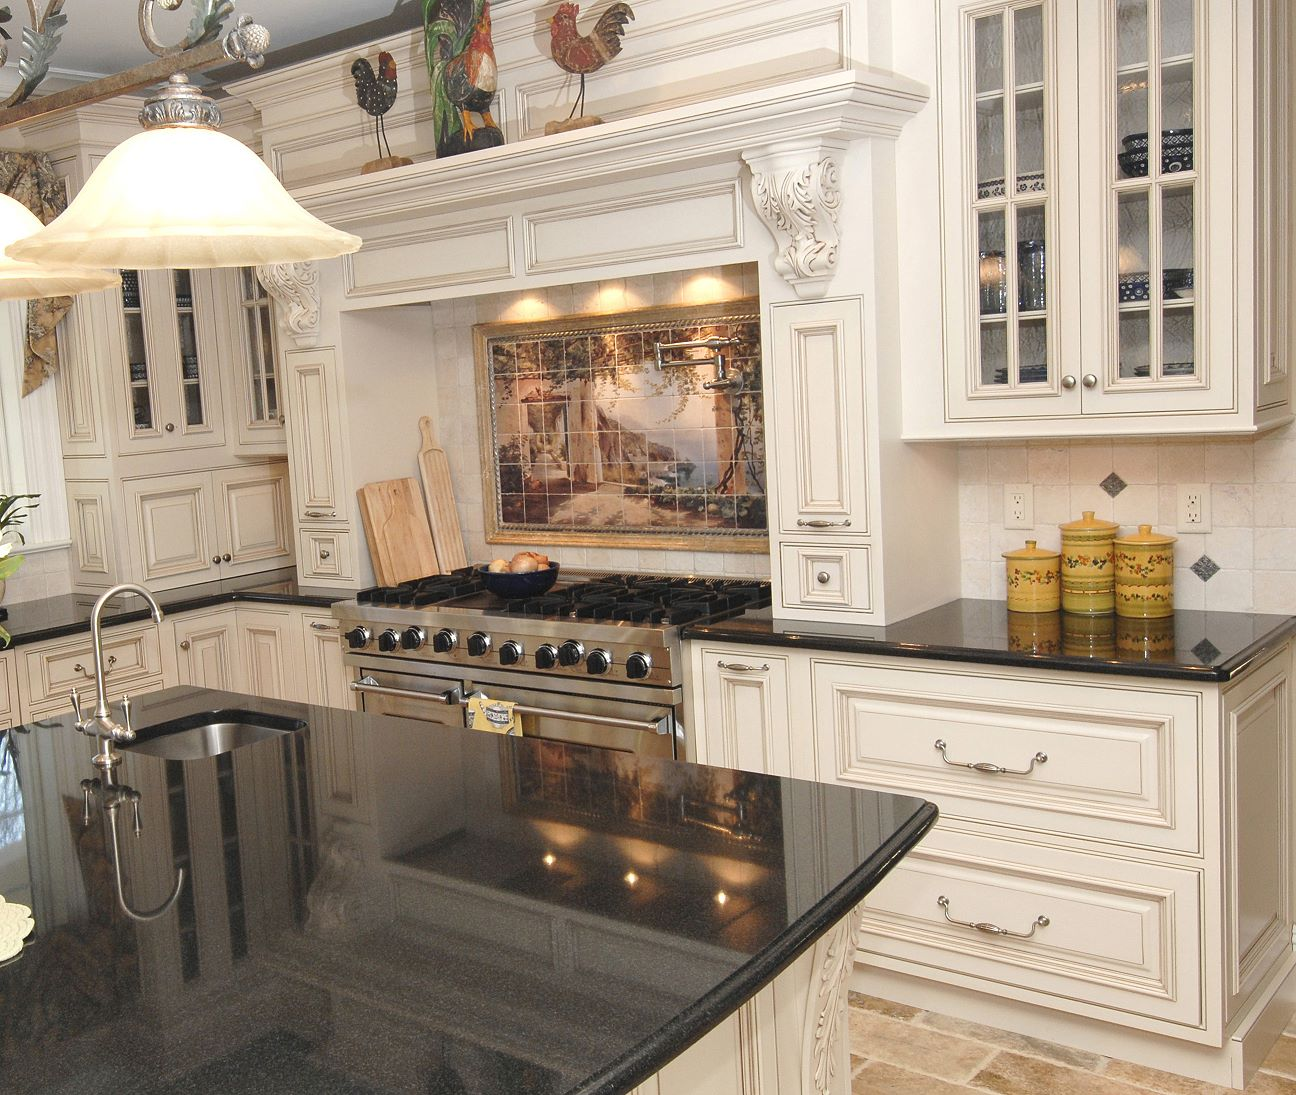 25 traditional kitchen designs for a royal look Kitchen renovation ideas 2015